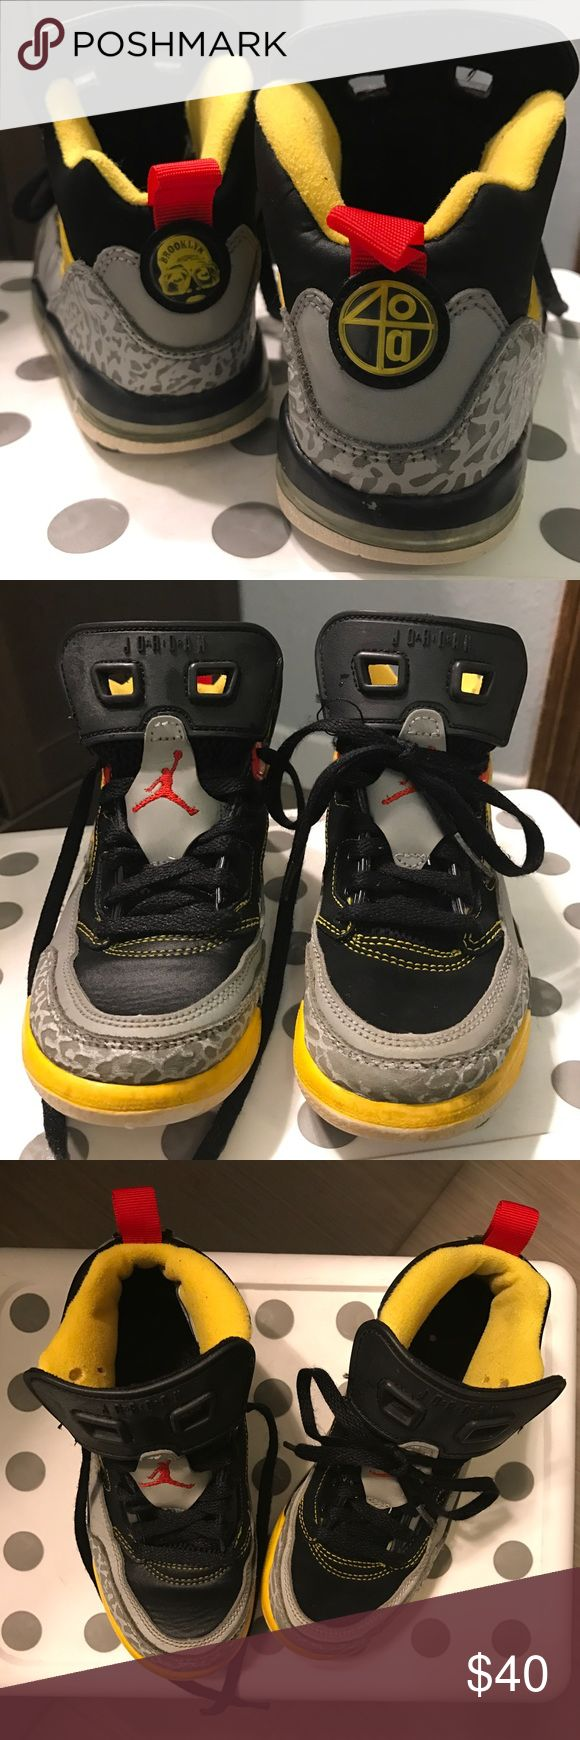 Jordan Spike Lee boys shoes Jordan Spike Lee boys shoes in yellow, gray, red, and black. Used but in good condition. Jordan Shoes Sneakers